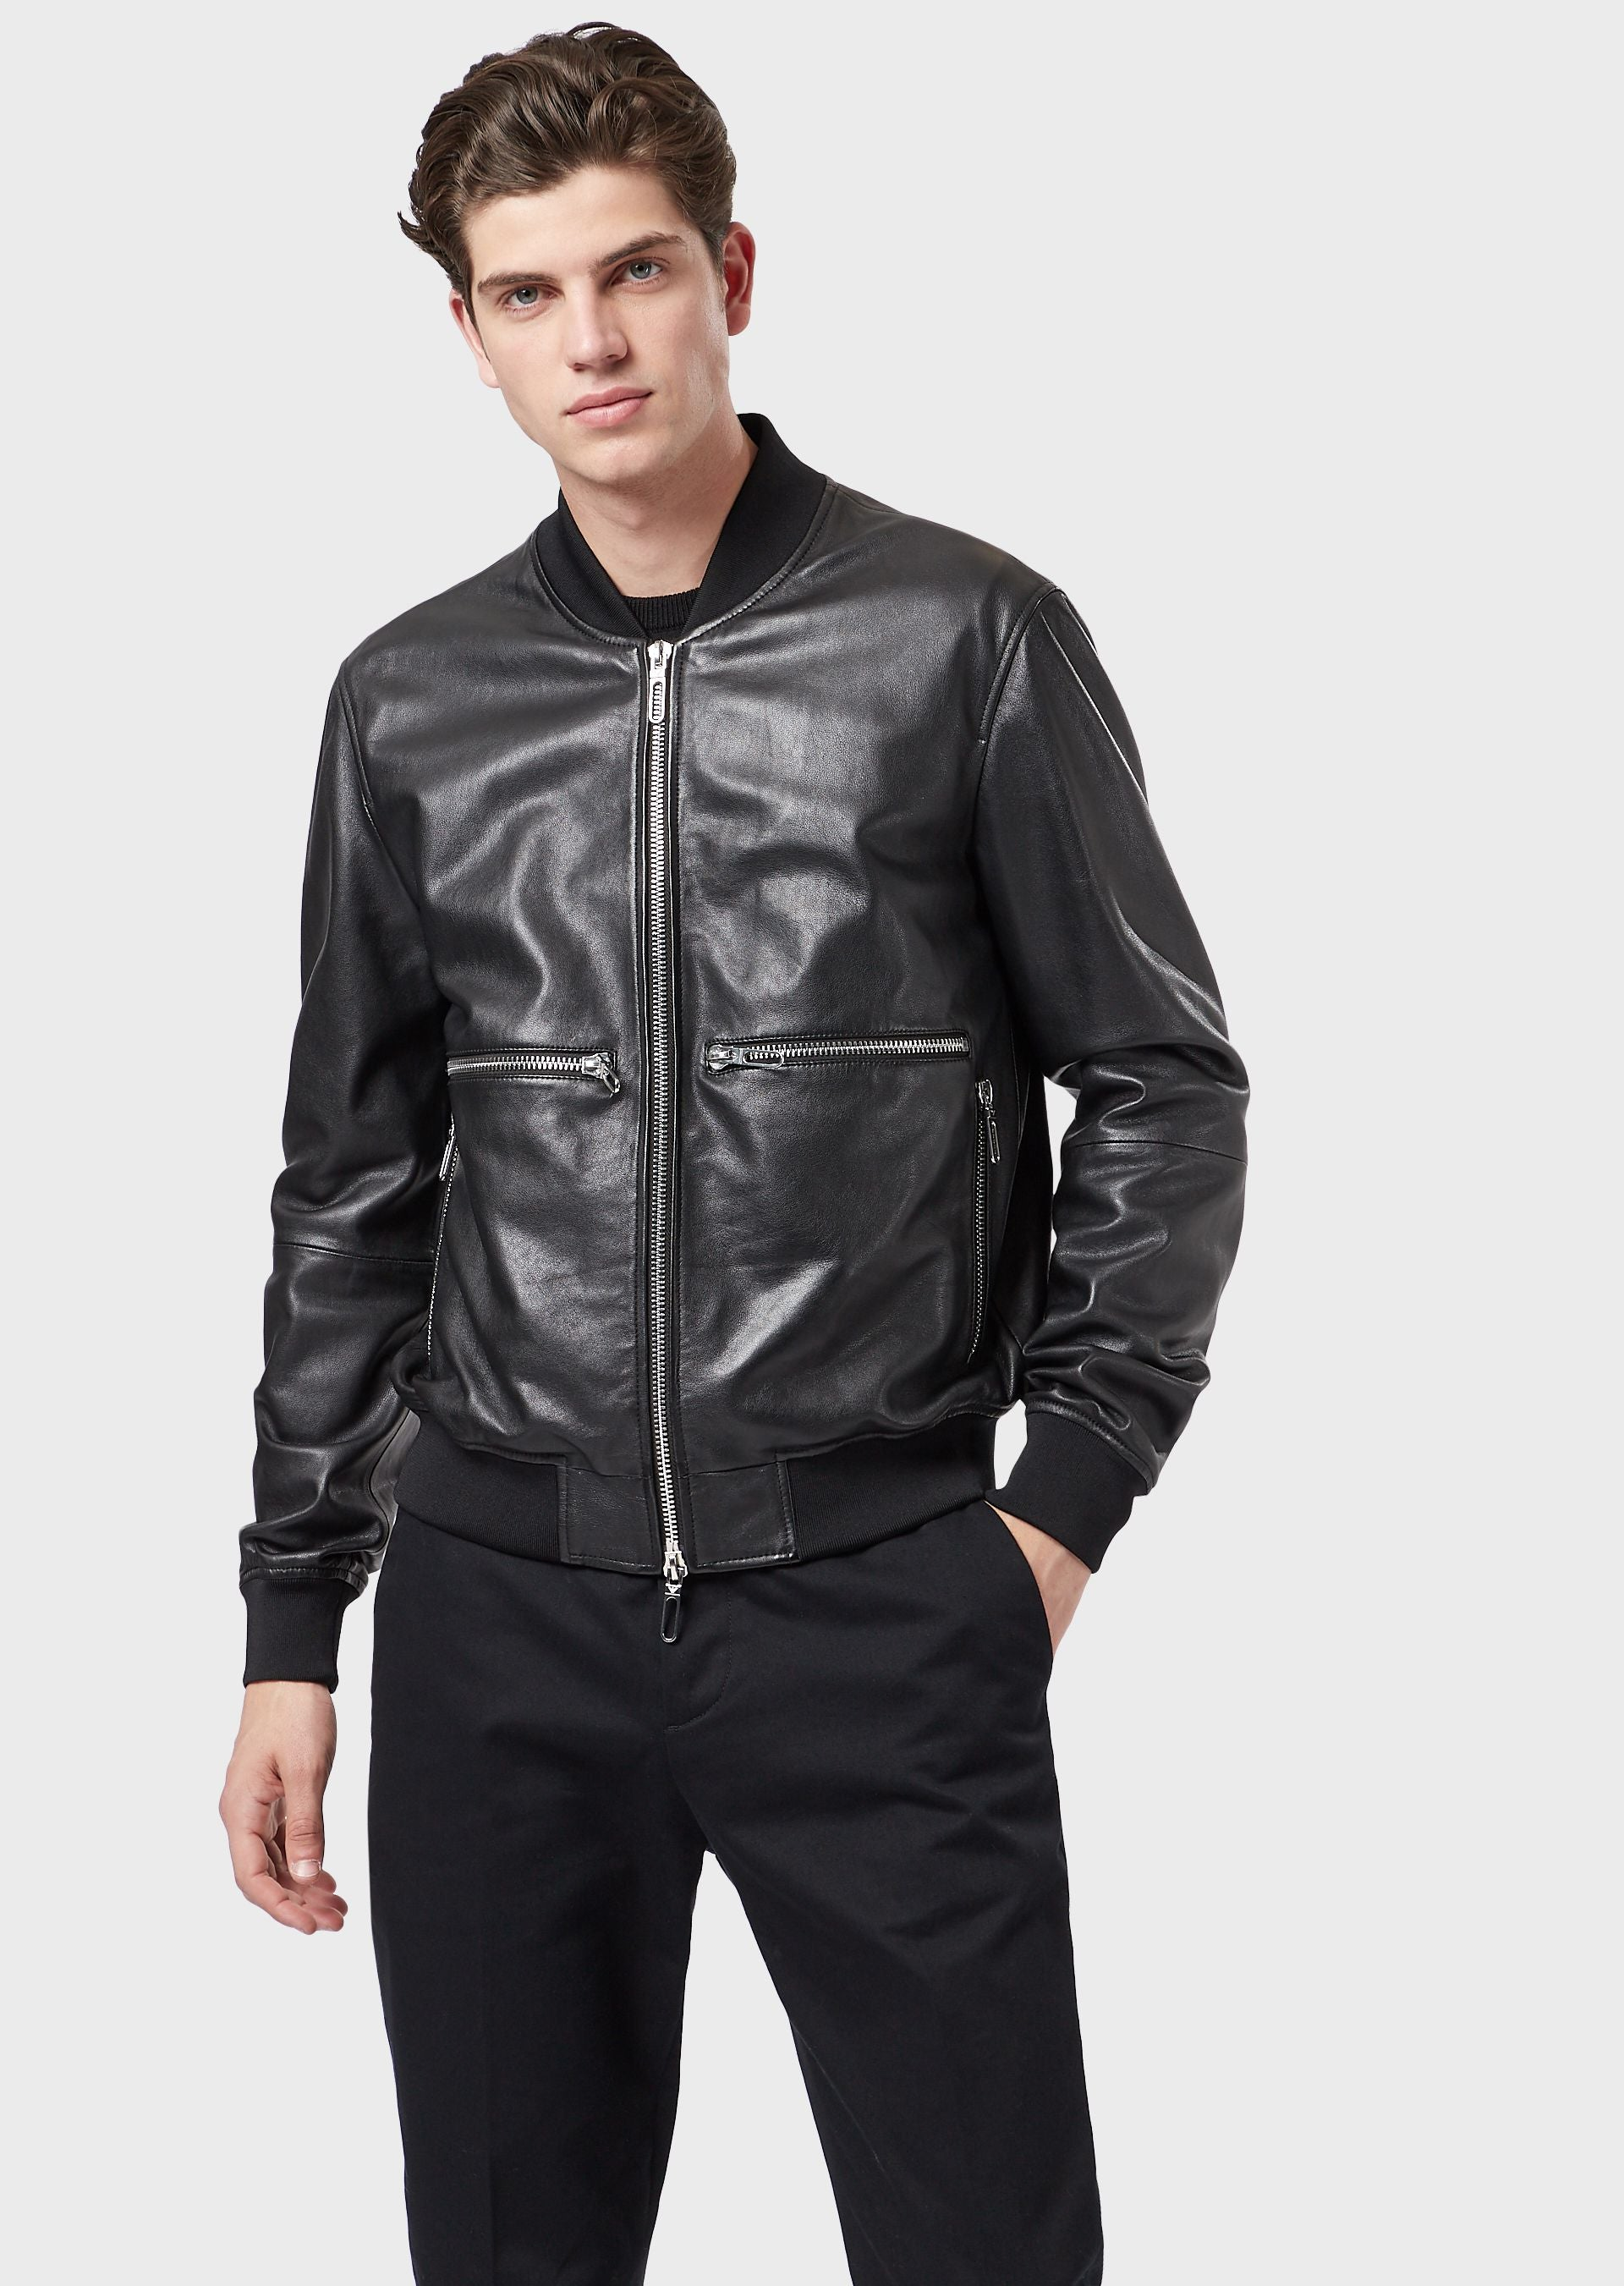 Men Leather Jacket > Biker Jackets, Men Leather Jacket, Men Leather Jacket > Suede Jackets